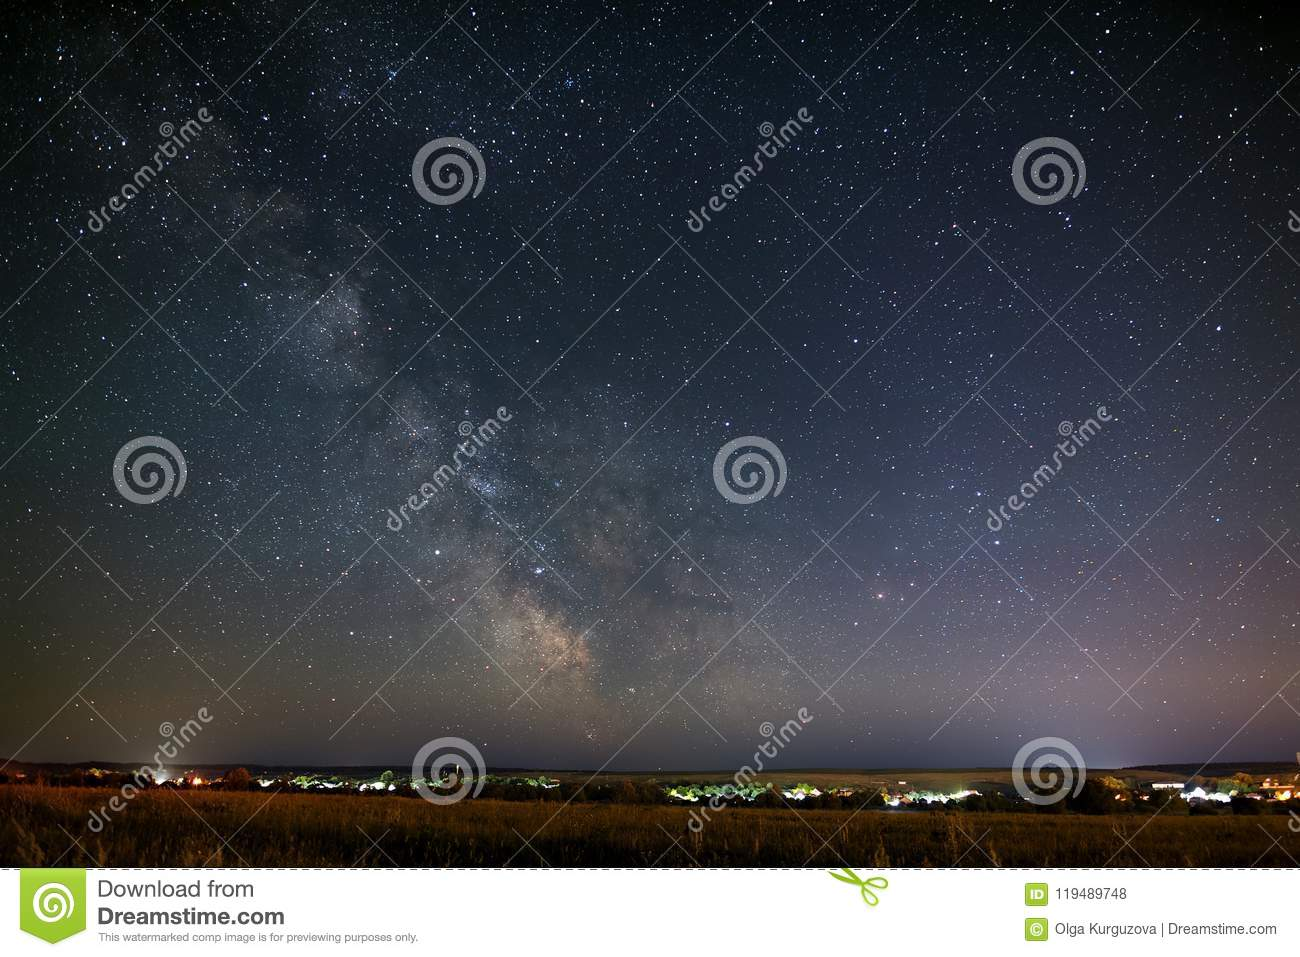 Bright stars part of the Milky Way in the night sky.